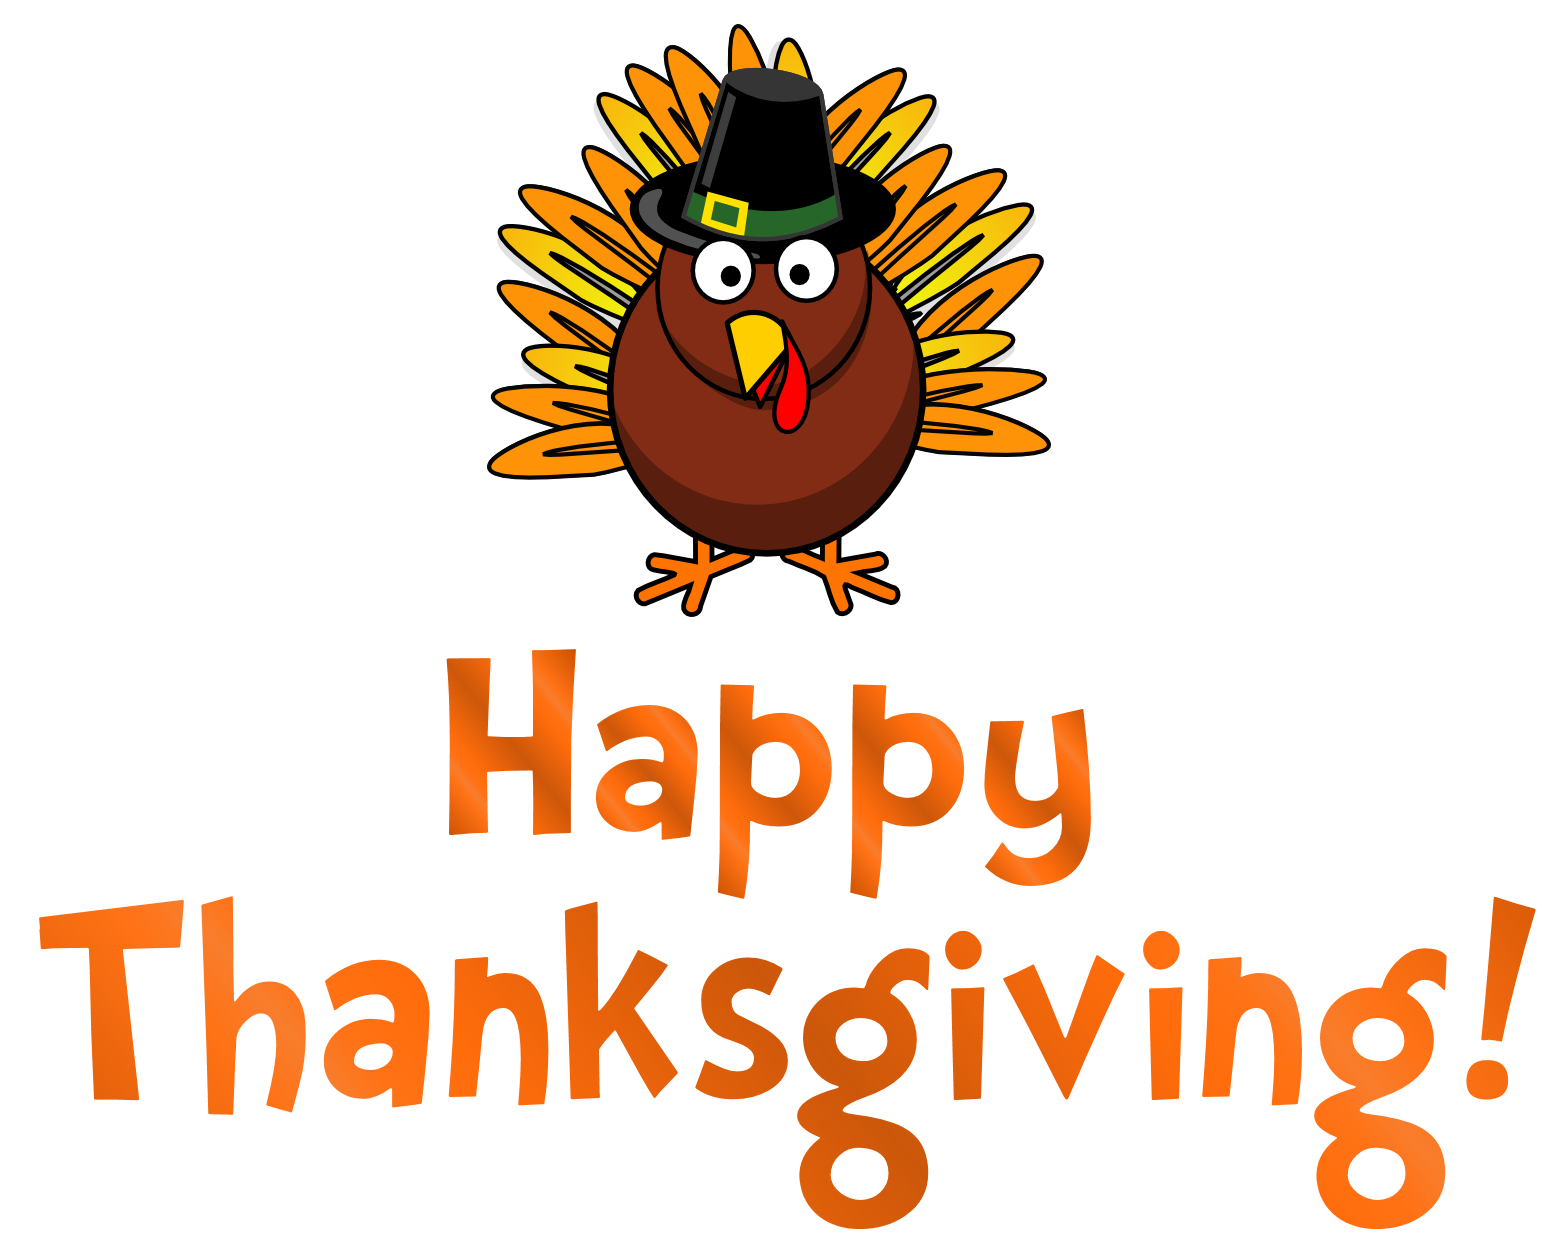 Happy Thanksgiving day pictures, wishes, images, messages